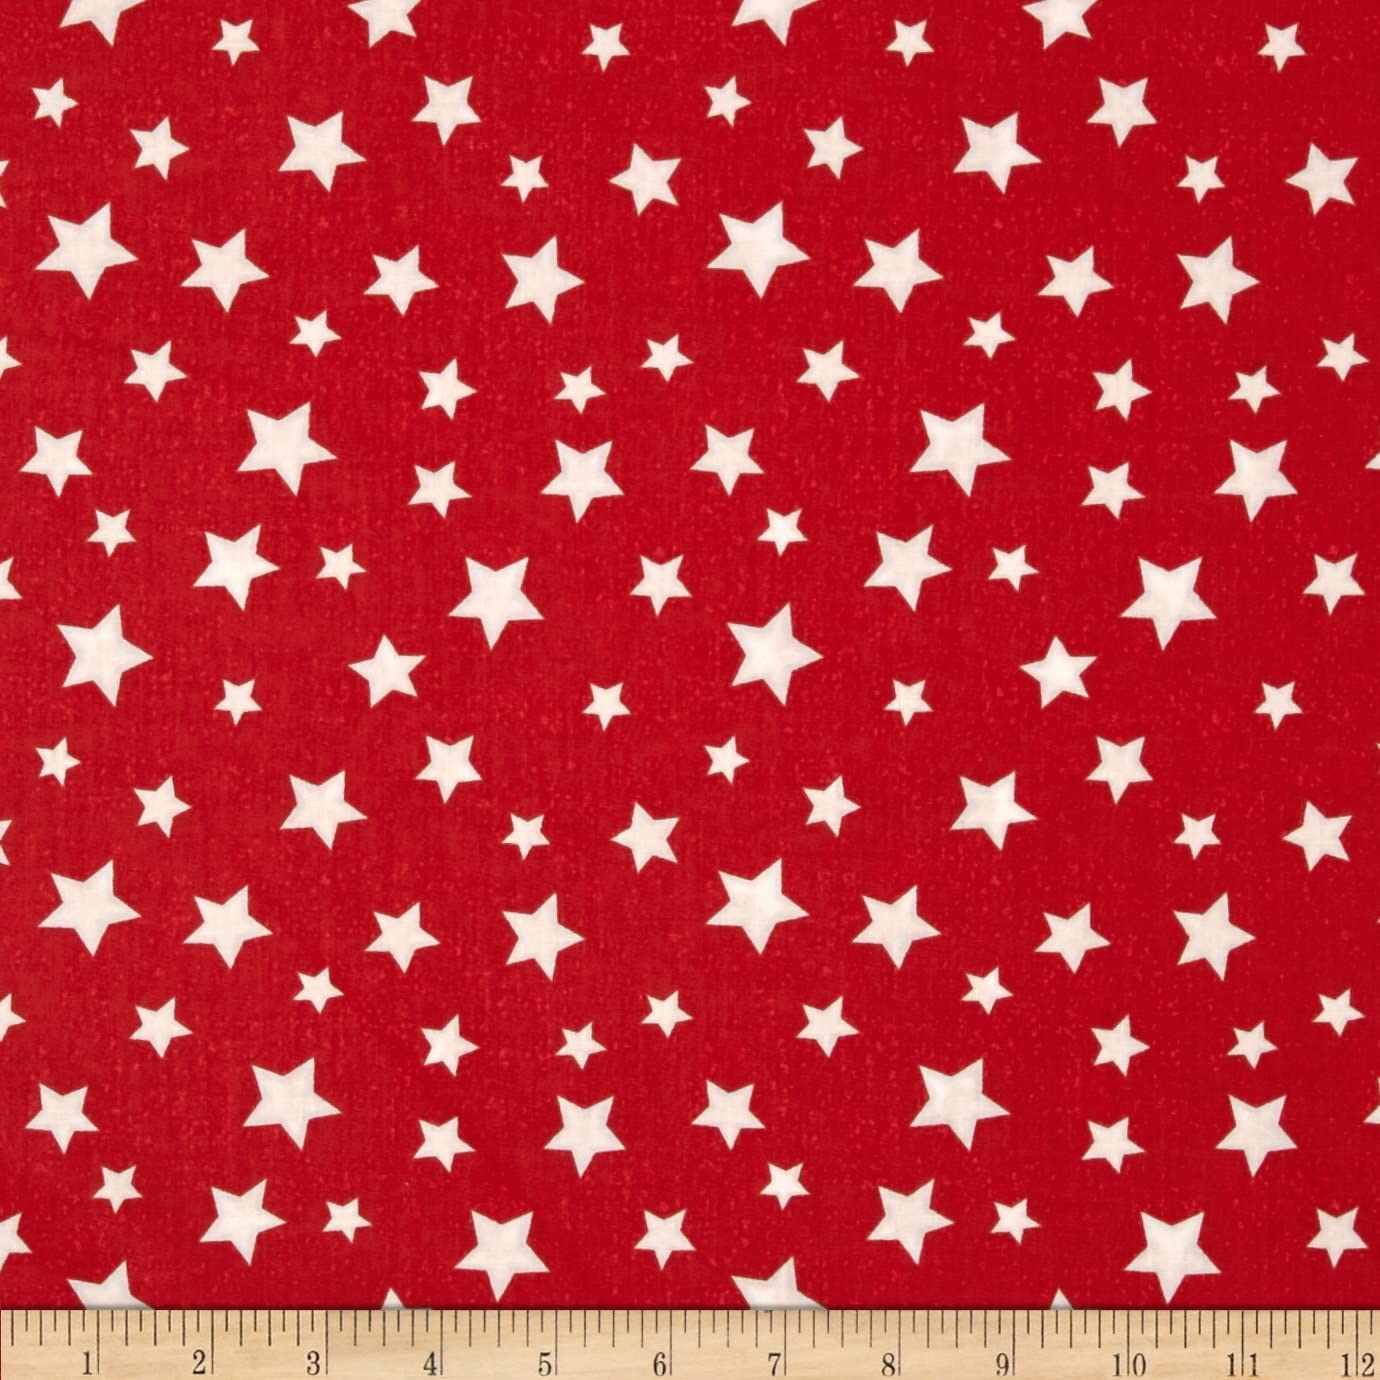 Wilmington Prints Essentials Star Fall Red/White Quilt Fabric By The Yard, Red/White